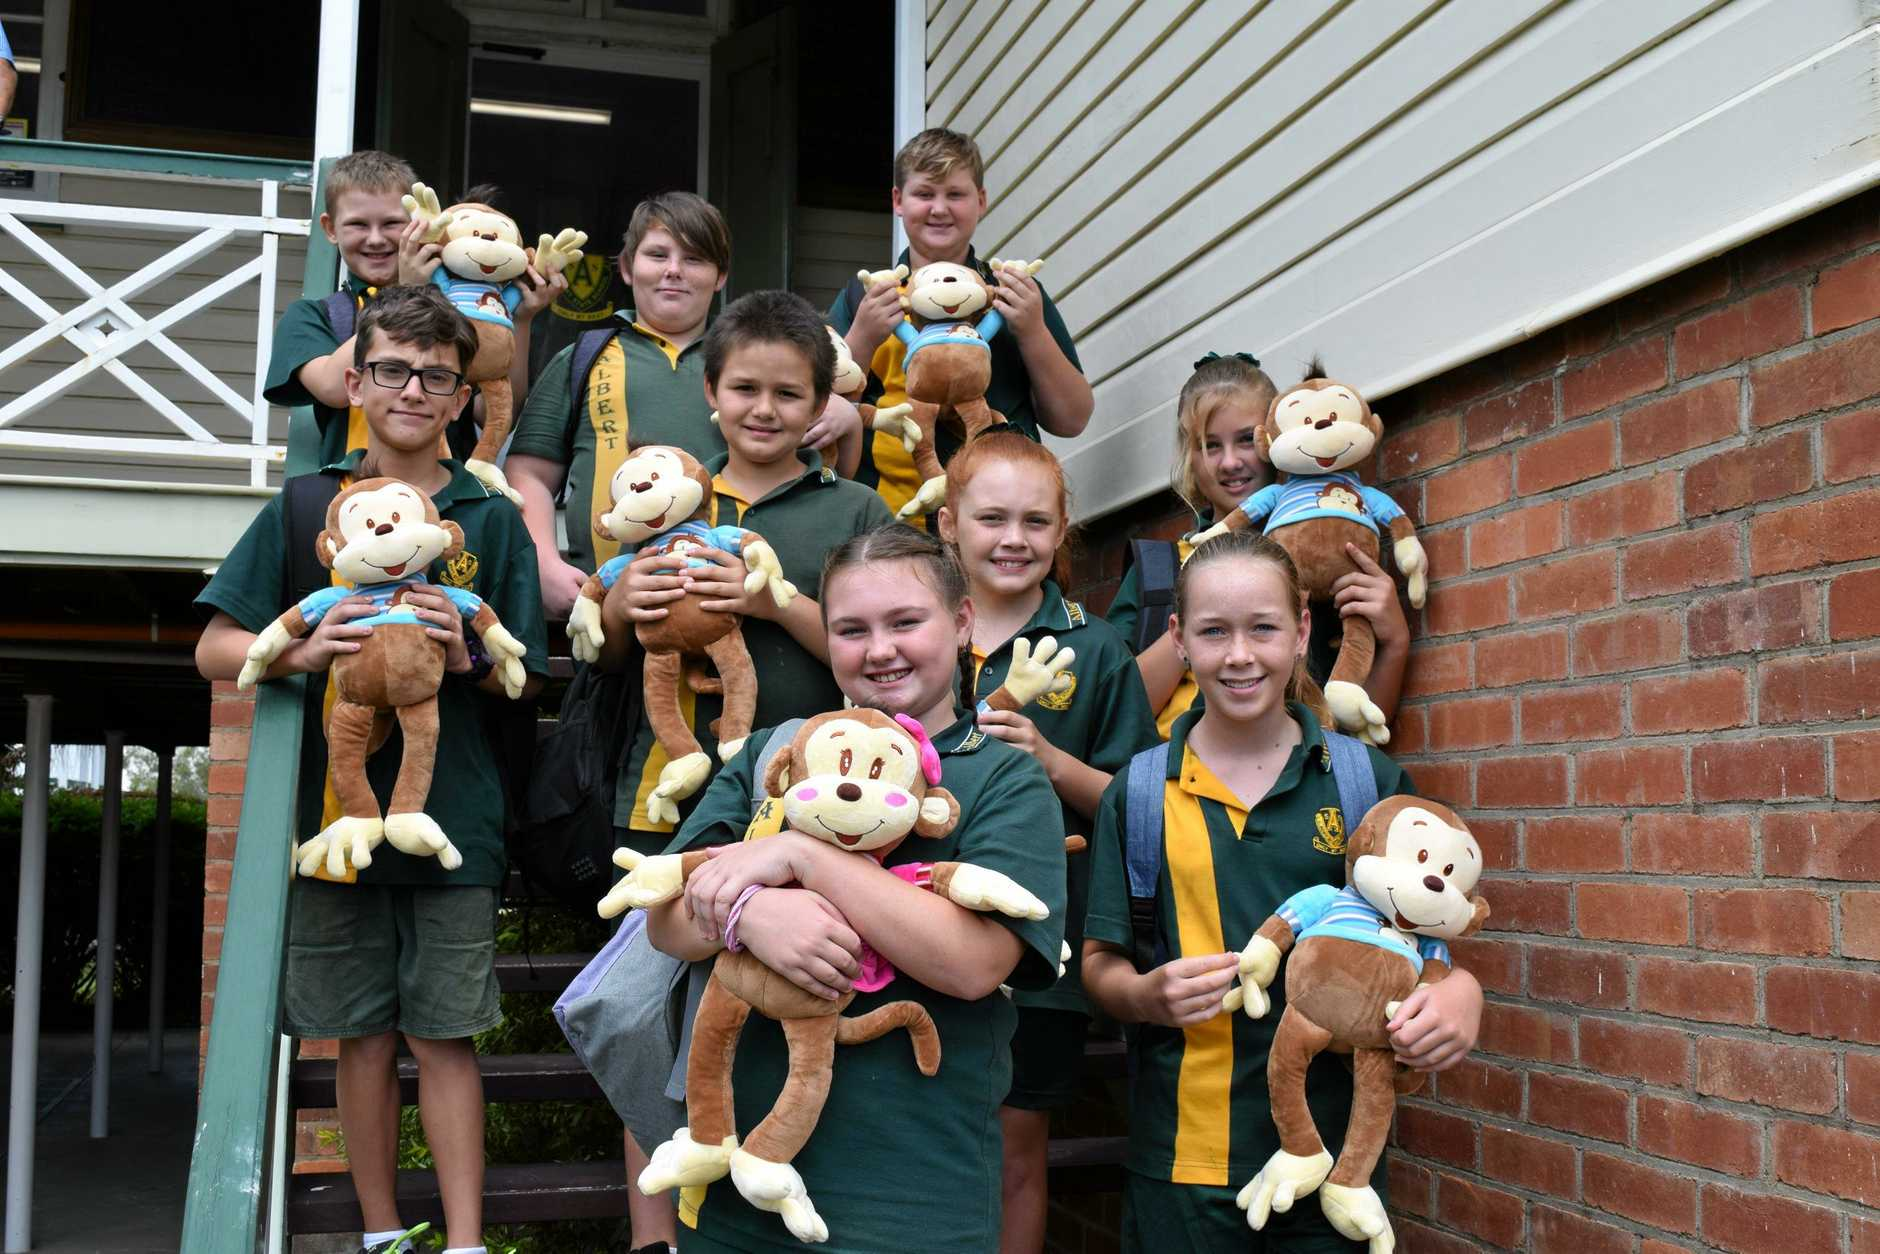 Albert State School student leader nominees (back from left) James Reece, Stephen Harcla, Zac Hughes, (middle from left) Lachlan Haigh, Jayden Treweek, Matilda Harrison, Sierra Pursey, (front from left) Taryn Smith and Kayleigh Hodder with the backpacks and stuffed monkeys donated by the Rotary Club of Maryborough Sunrise.